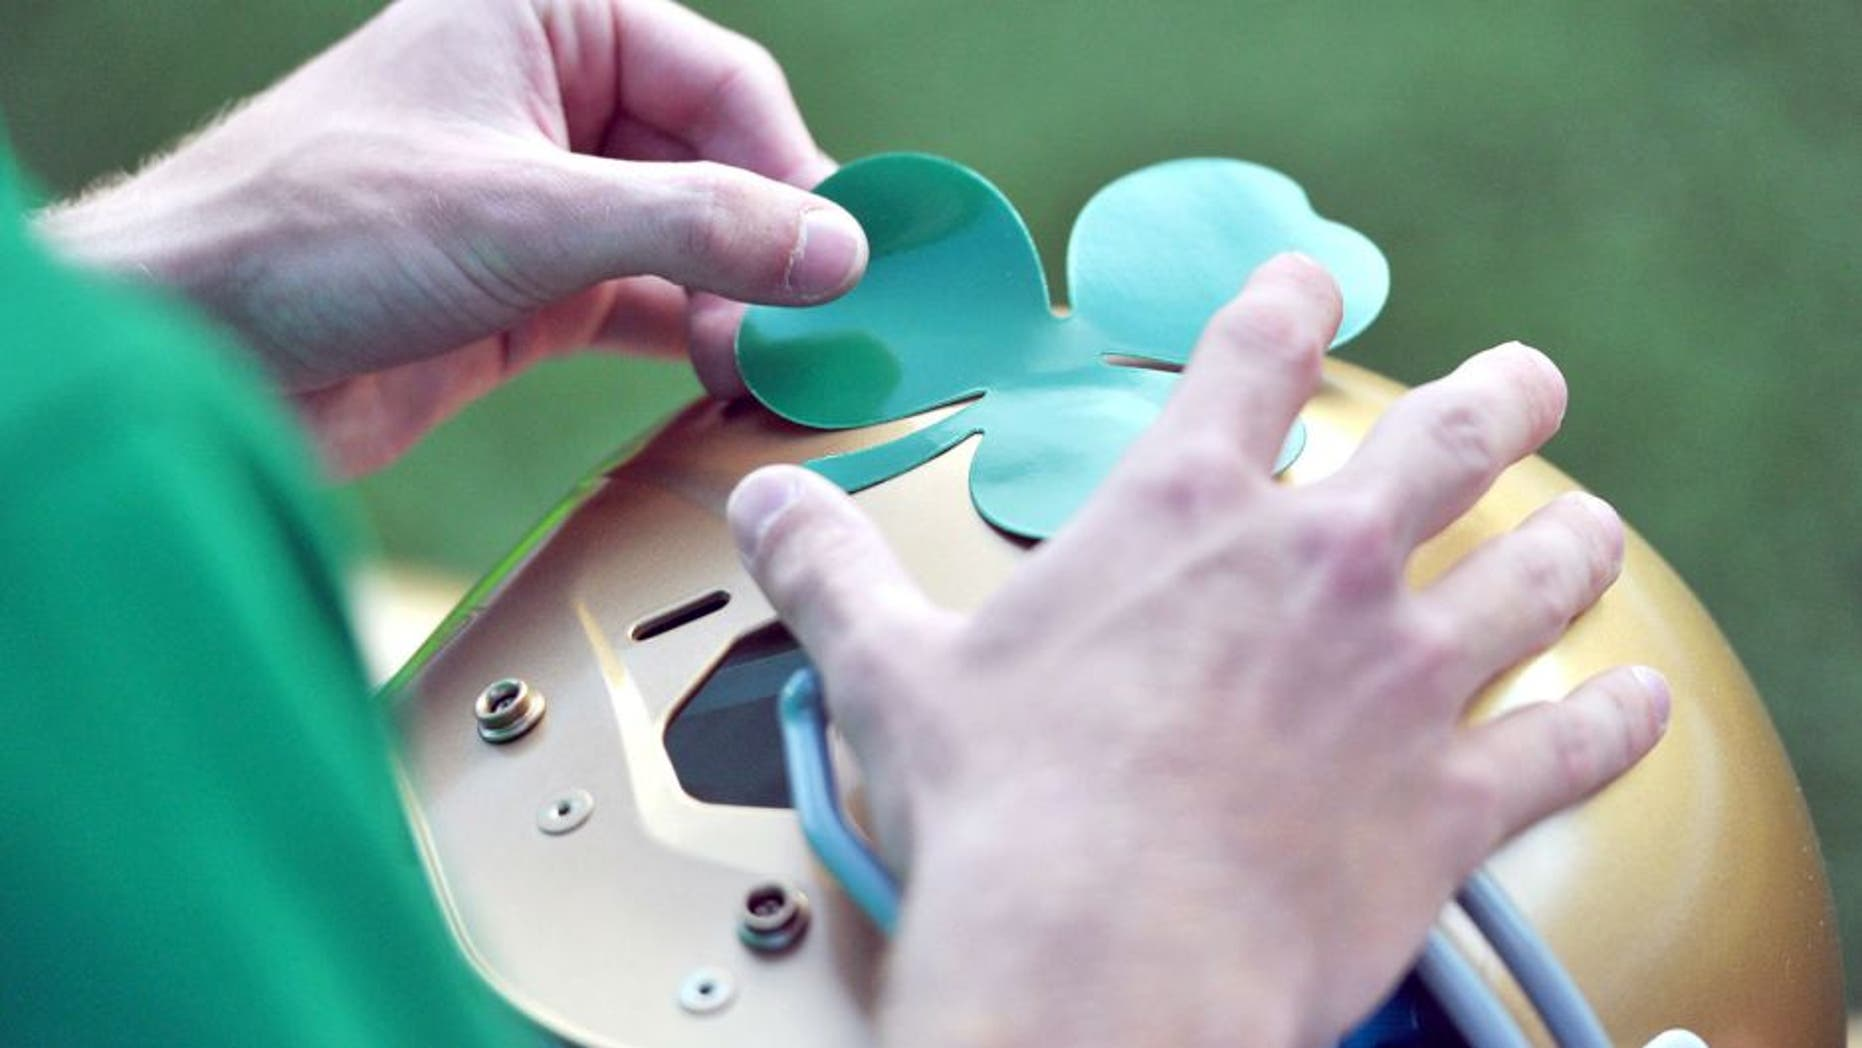 Sept. 10, 2011; Ann Arbor, MI, USA; A student manager applies a shamrock decal to a Notre Dame helmet before the game between the Notre Dame Fighting Irish and the Michigan Wolverines at Michigan Stadium. Mandatory Credit: Matt Cashore-USA TODAY Sports